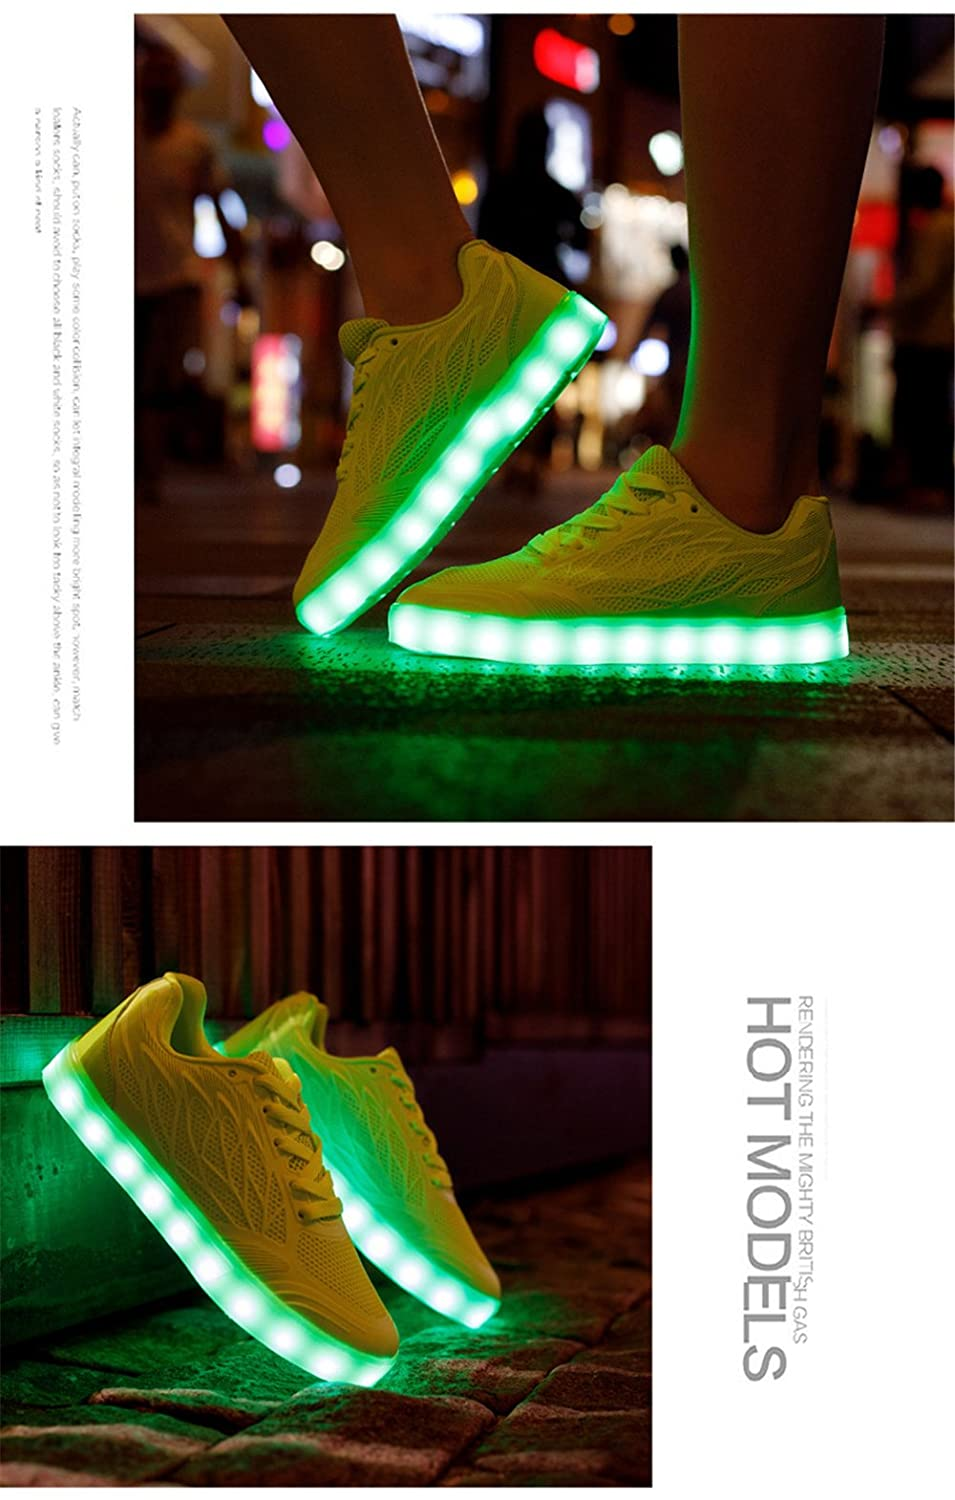 Smart.A LED Light Up Shoes for Kids Multi-Color LED Lighting Shoes with USB Charging for Little Kid//Big Kid